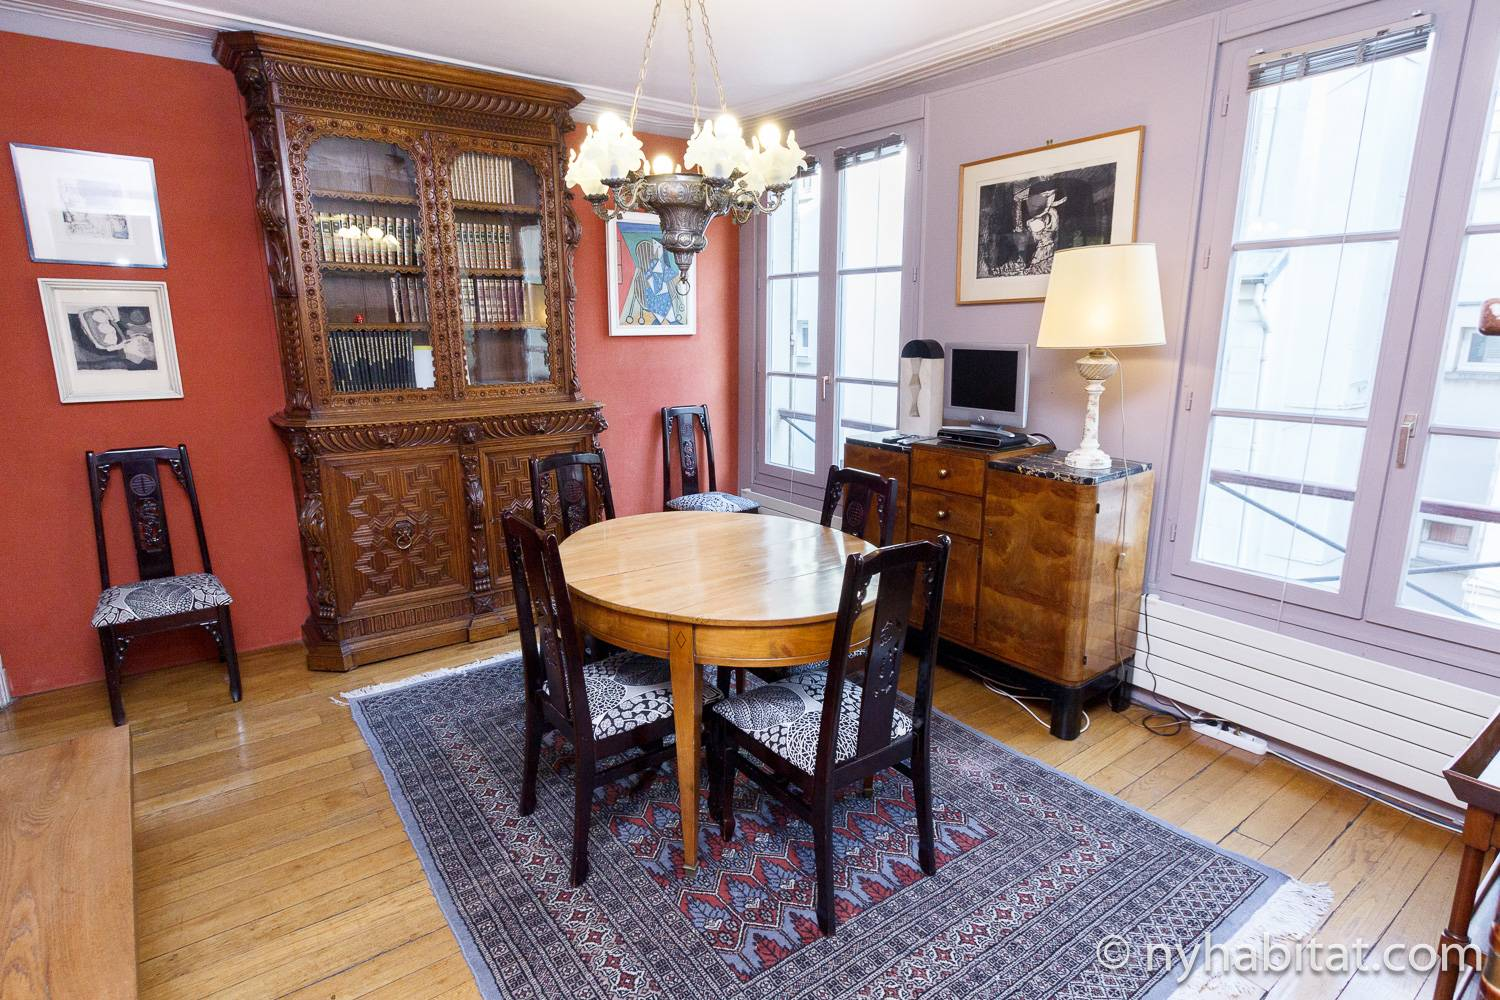 Image of dining area of PA-3968 with table, chairs and antique-style furniture.